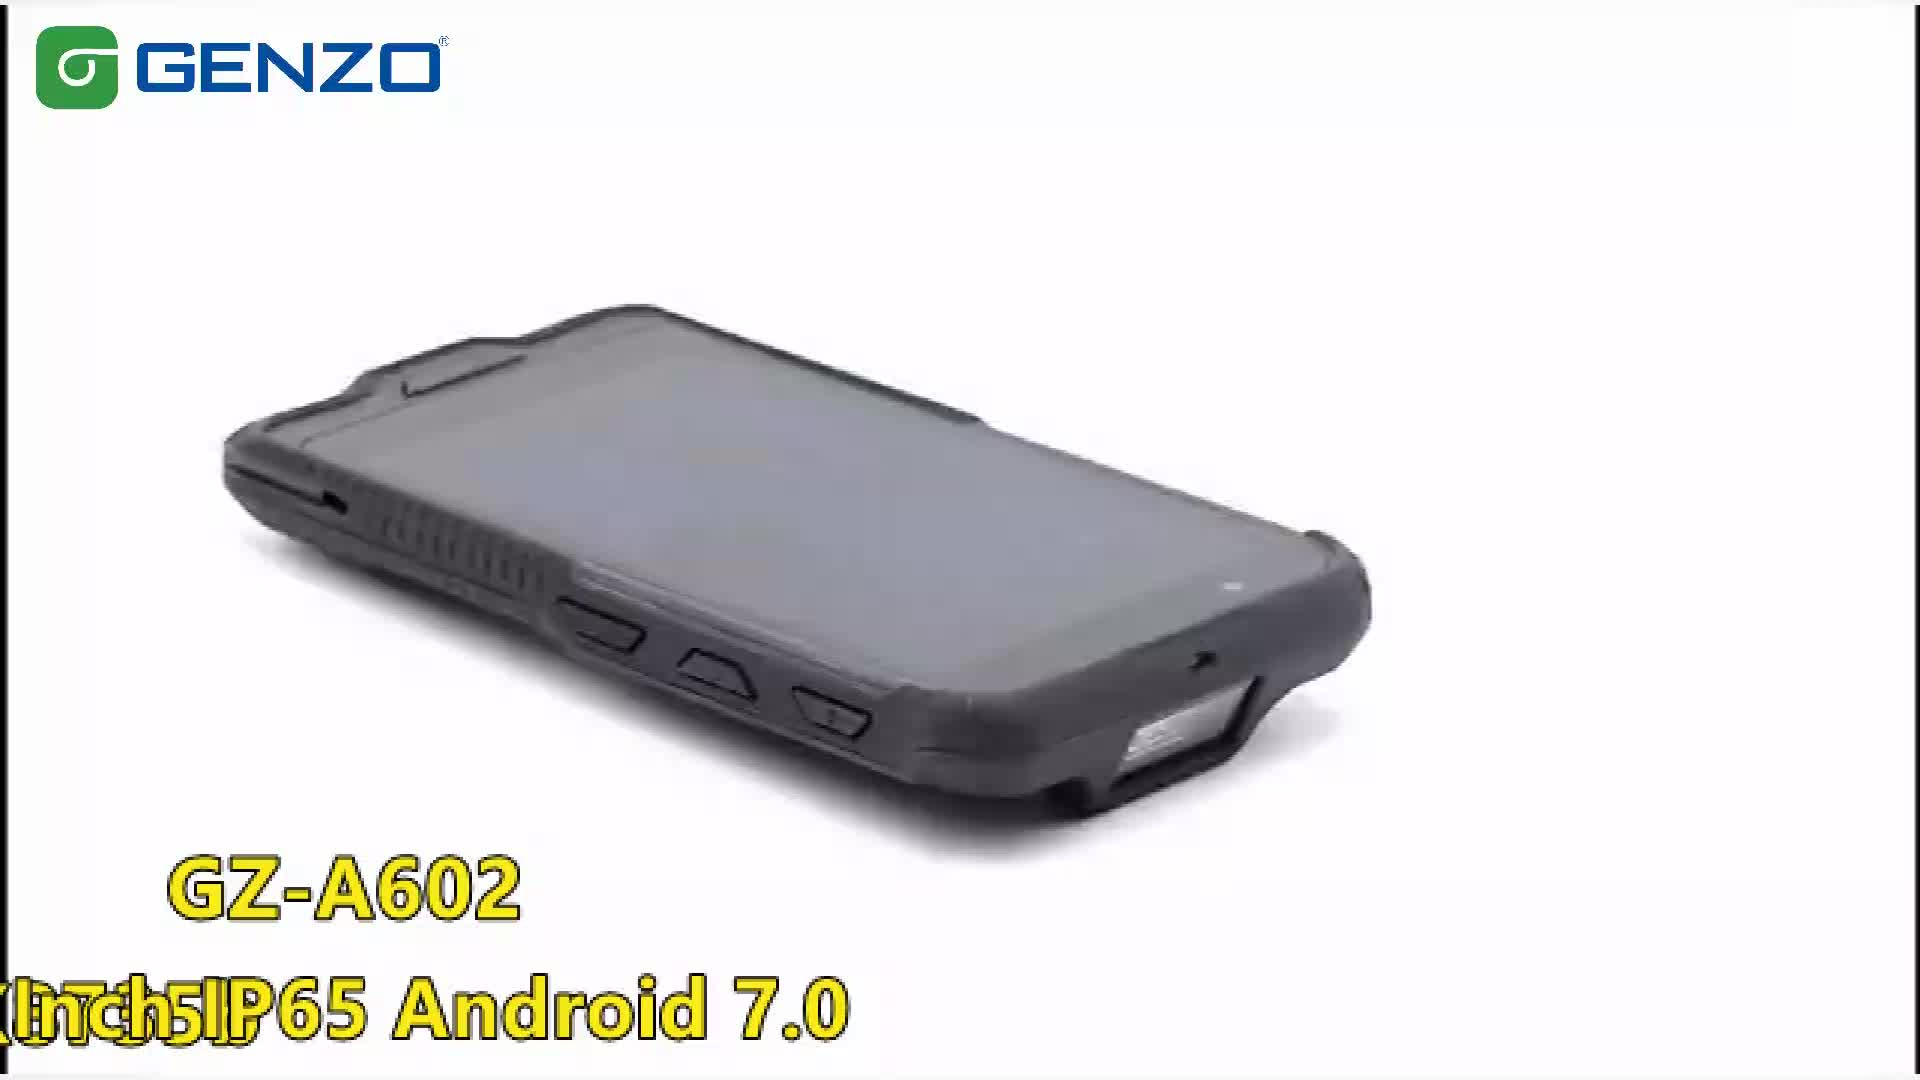 Shockproof Waterproof NOT Used Phone 4G Rugged Android 8.1 Smart Phone With 5000mAh Mobile Phone lcds NFC 2D Barcode Scanner